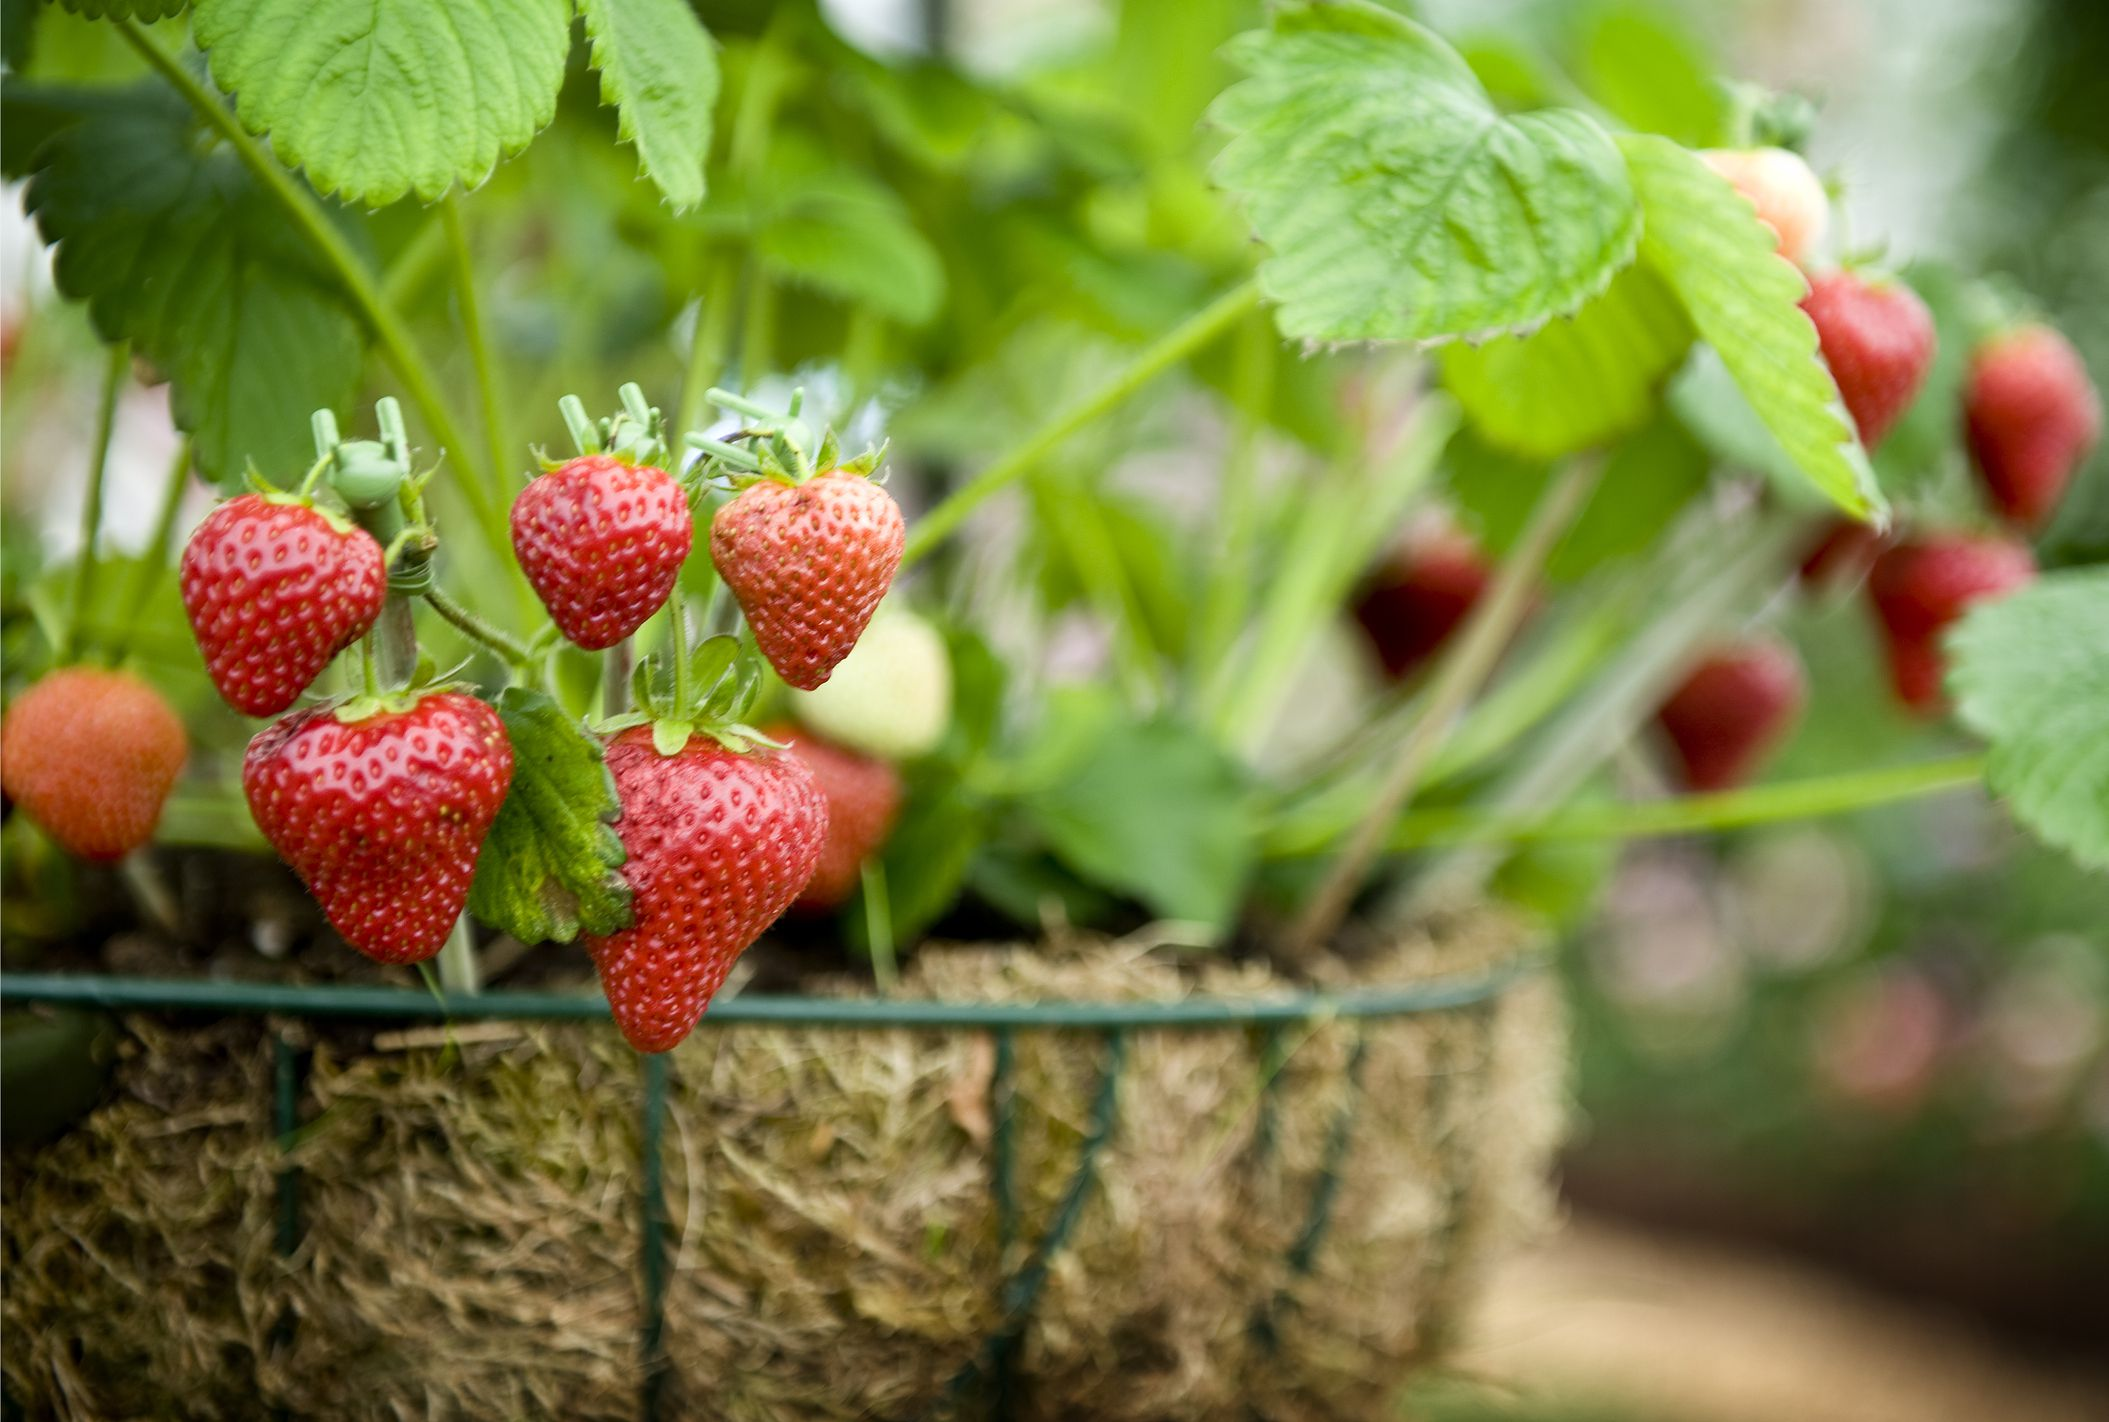 Best strawberries to grow in texas - 10 Tips For Tempting Strawberries